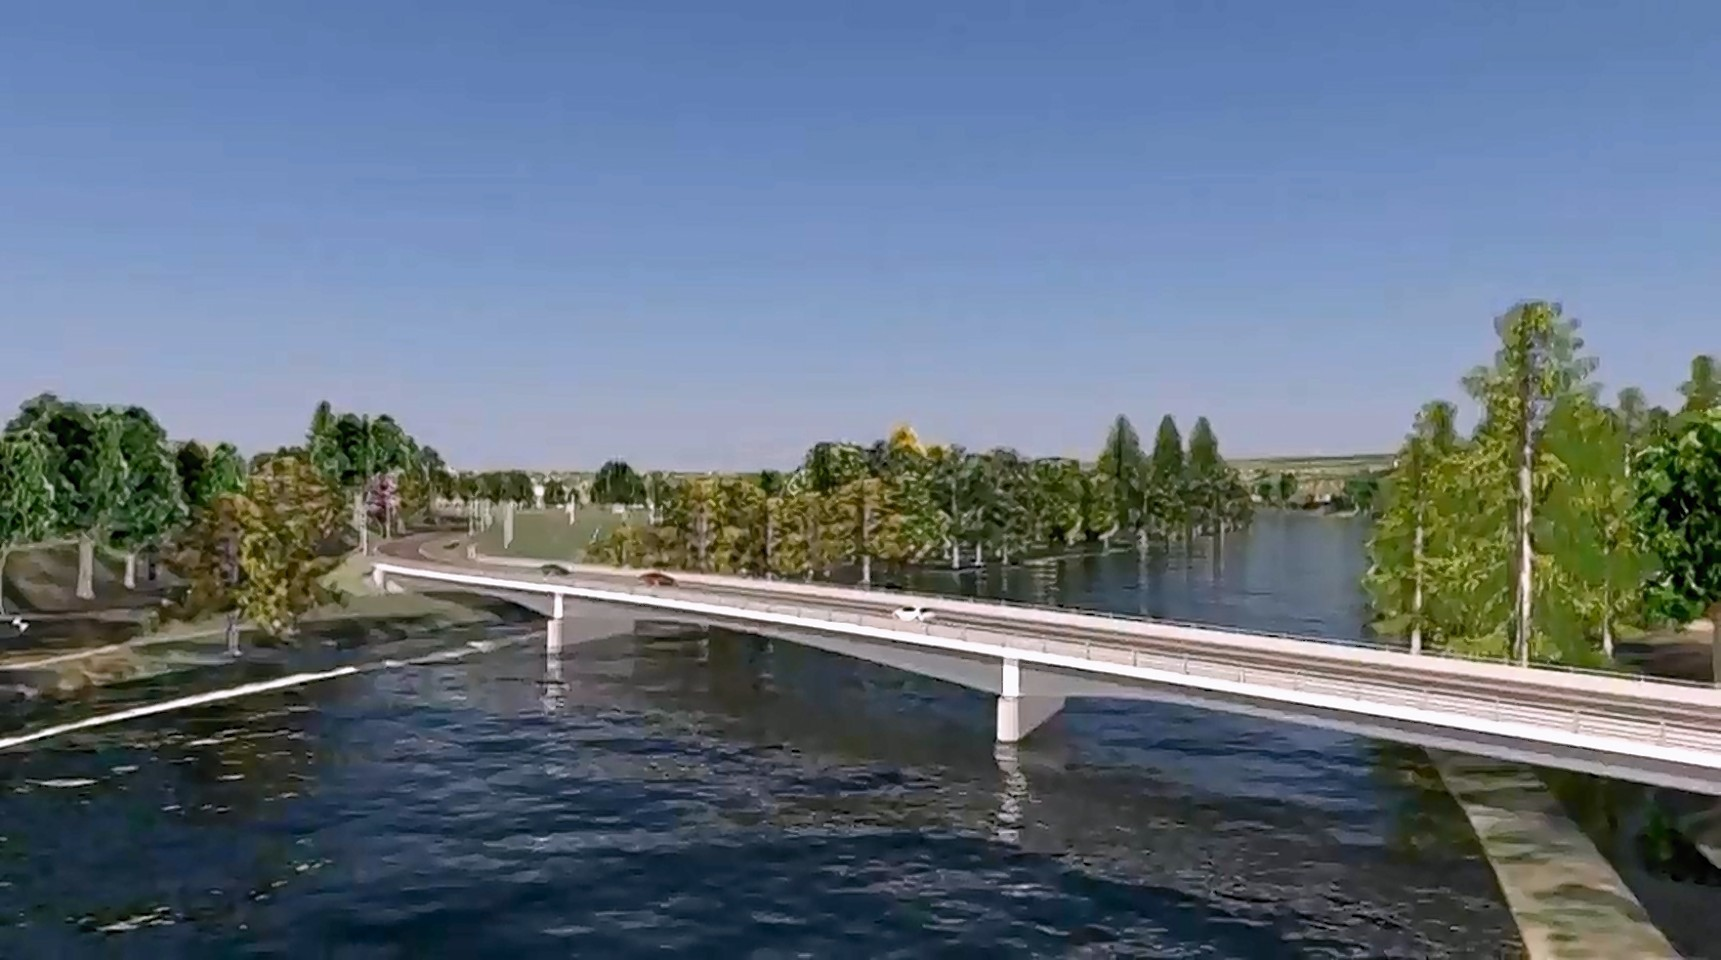 Audit Scotland said that more regular updates should have been given on the Inverness West Link